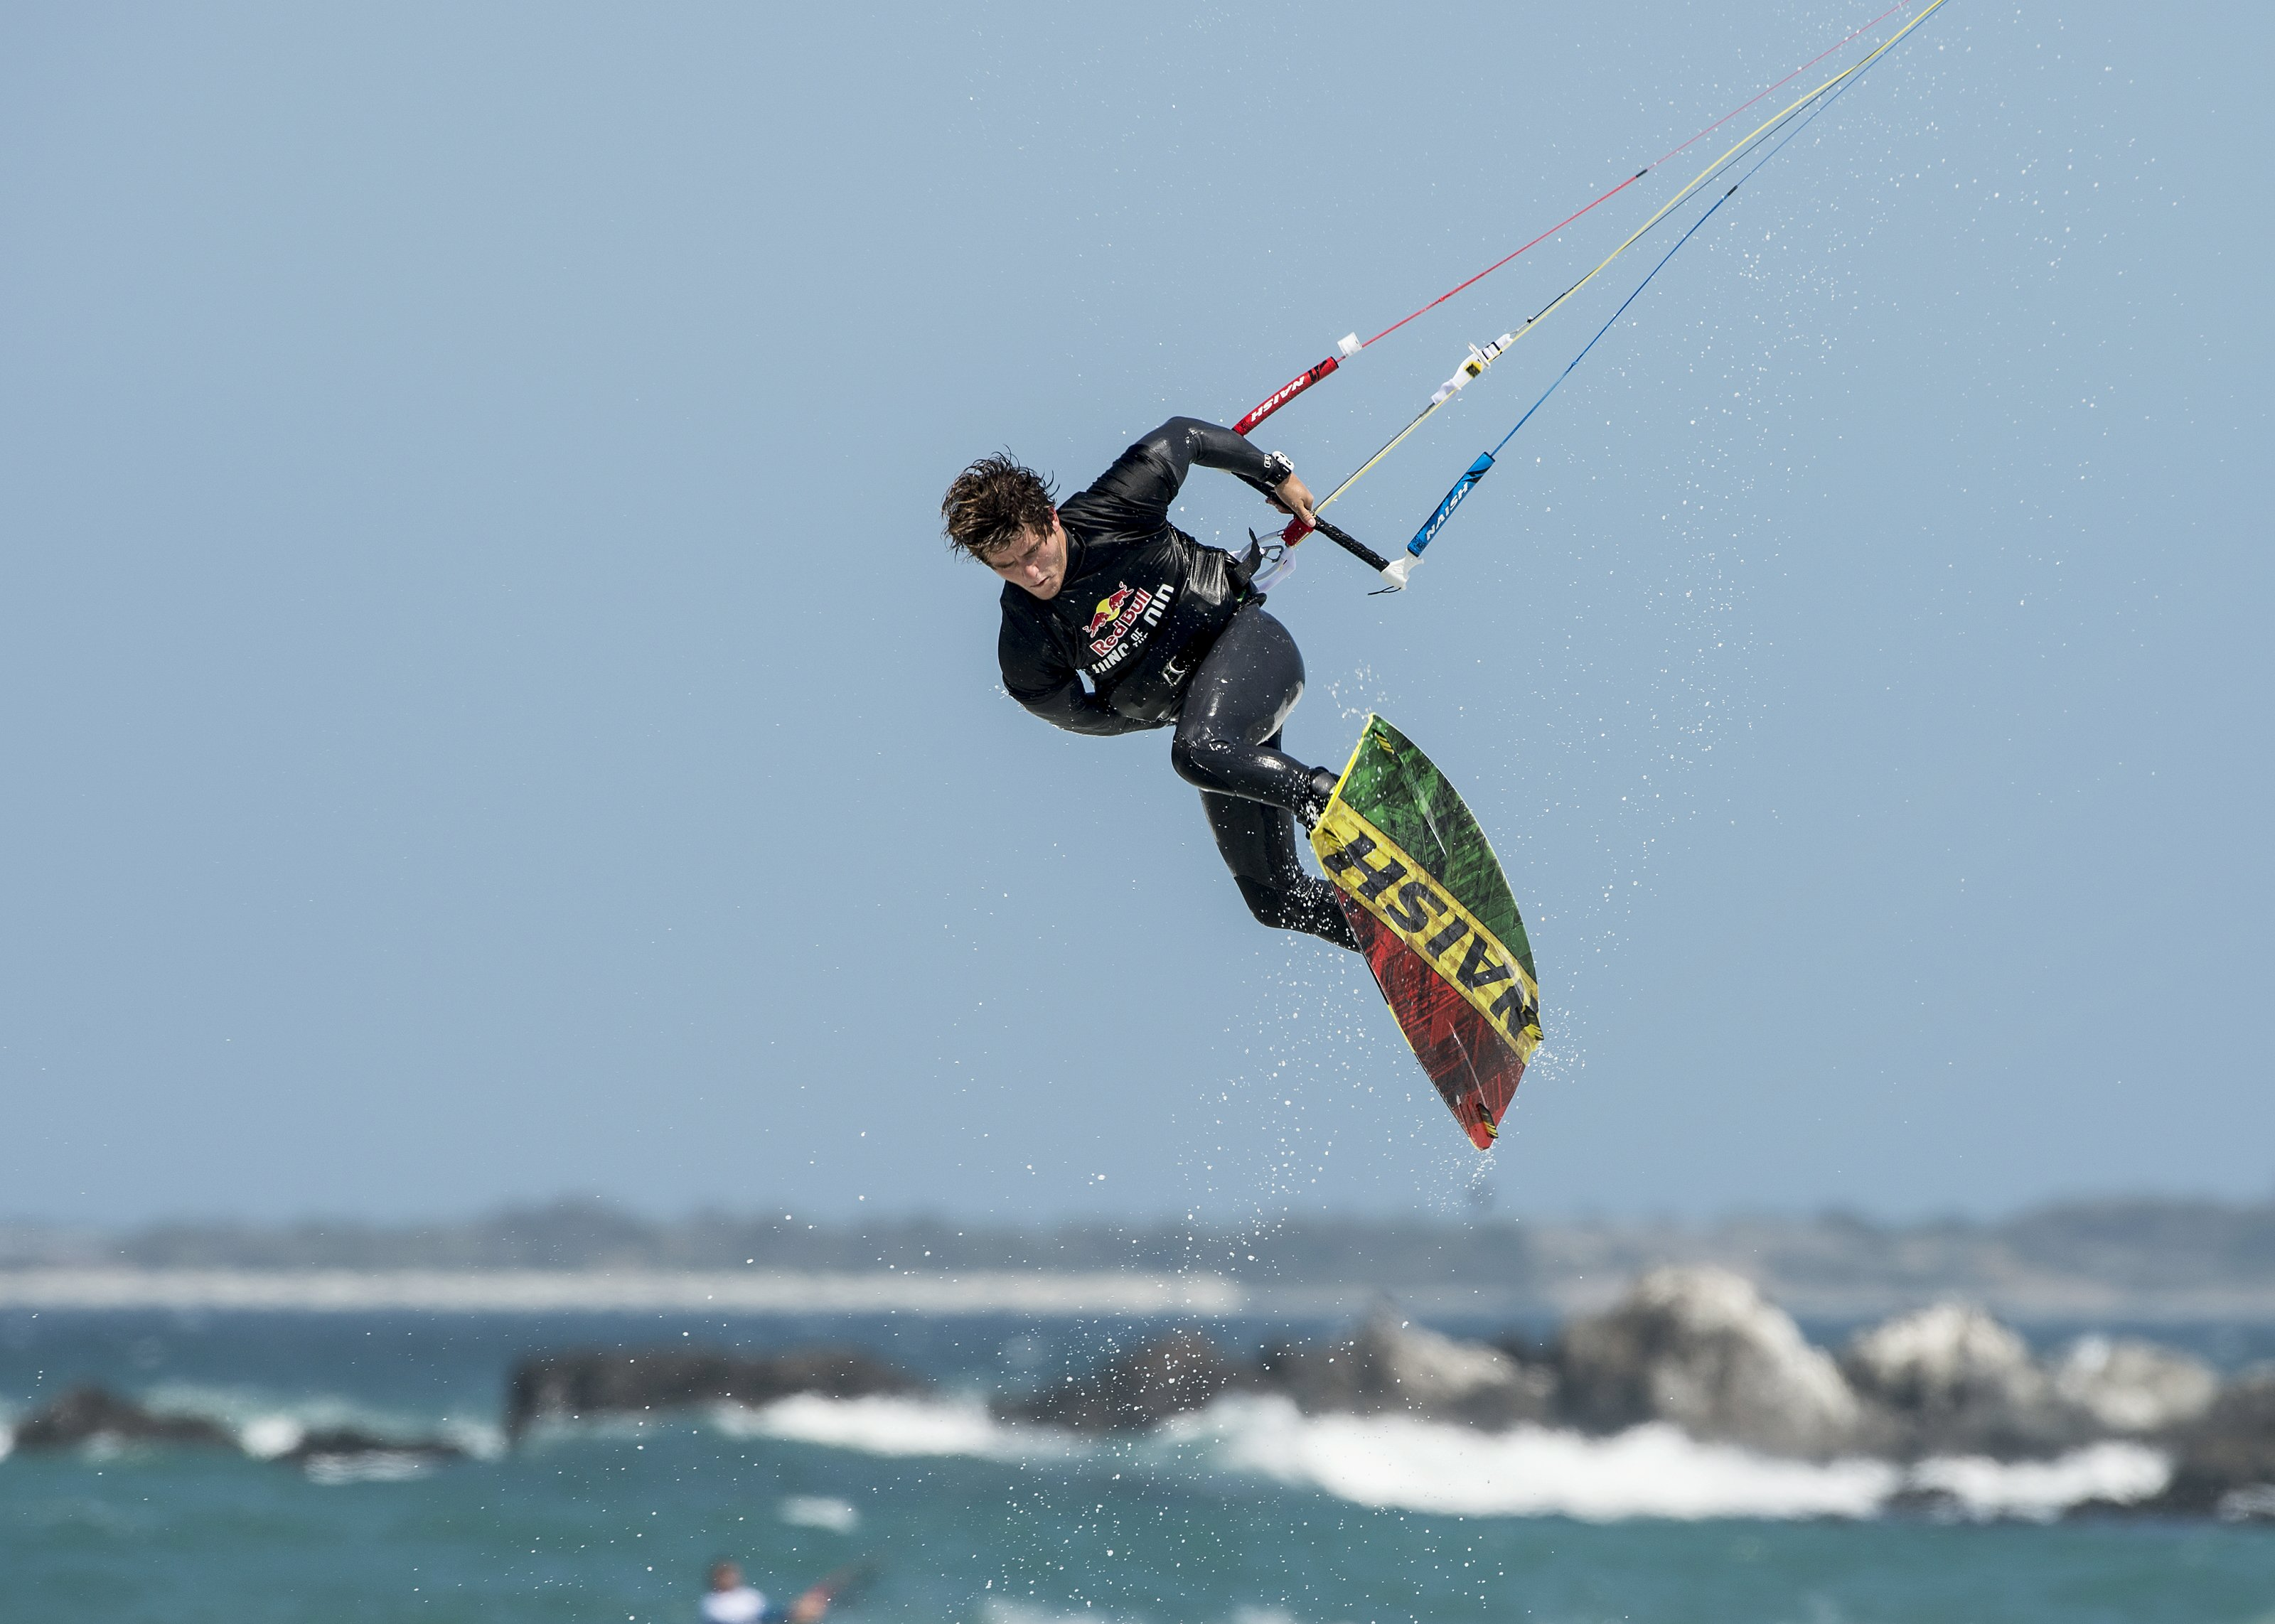 Catch the world's best in Kiteboarding at the Red Bull King of the Air 2015